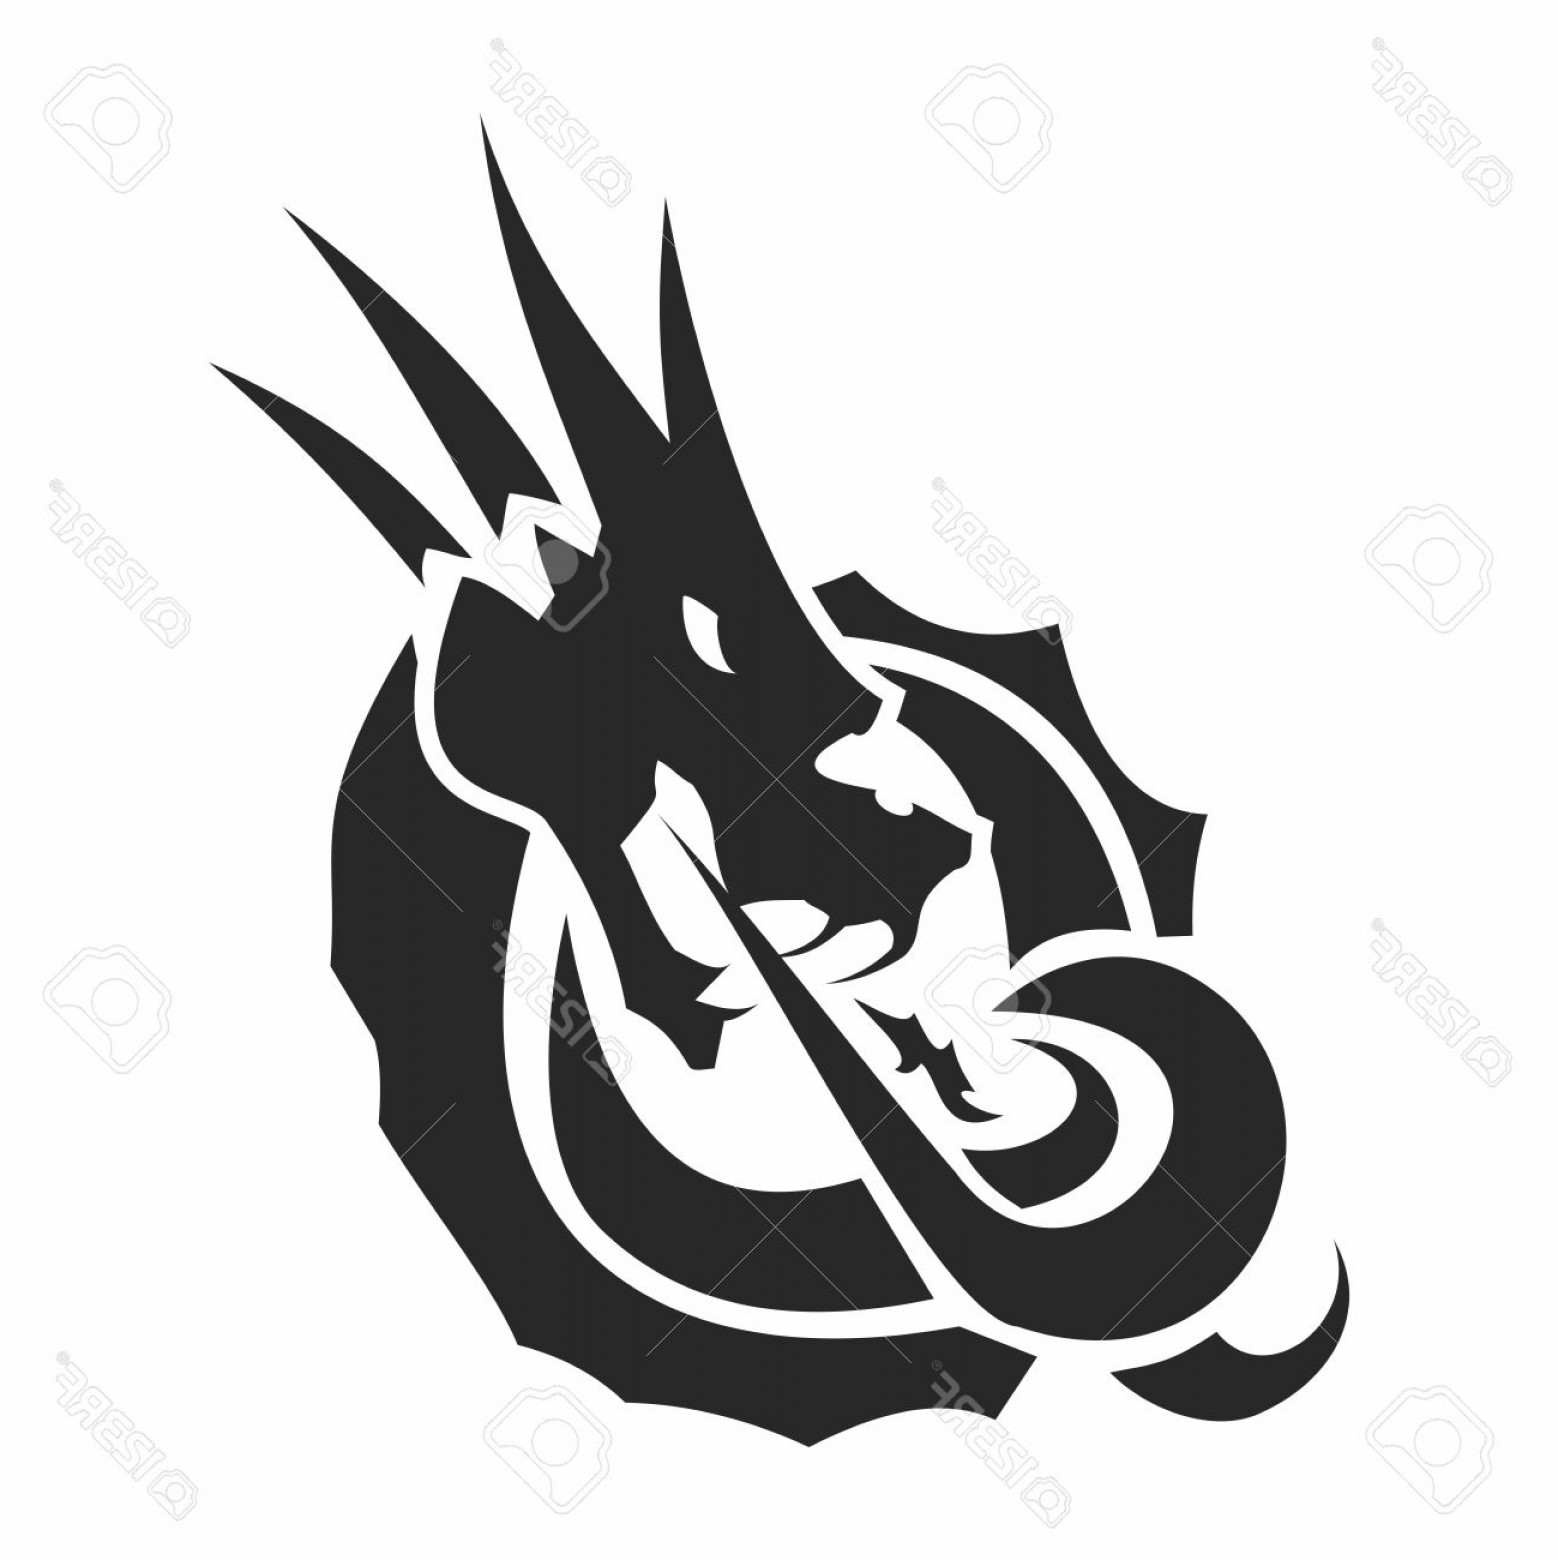 Dragon Fire Vector: Photostock Vector Vector Monochrome Artistic Dragon Emblem Logo Fire Breathing Silhouette